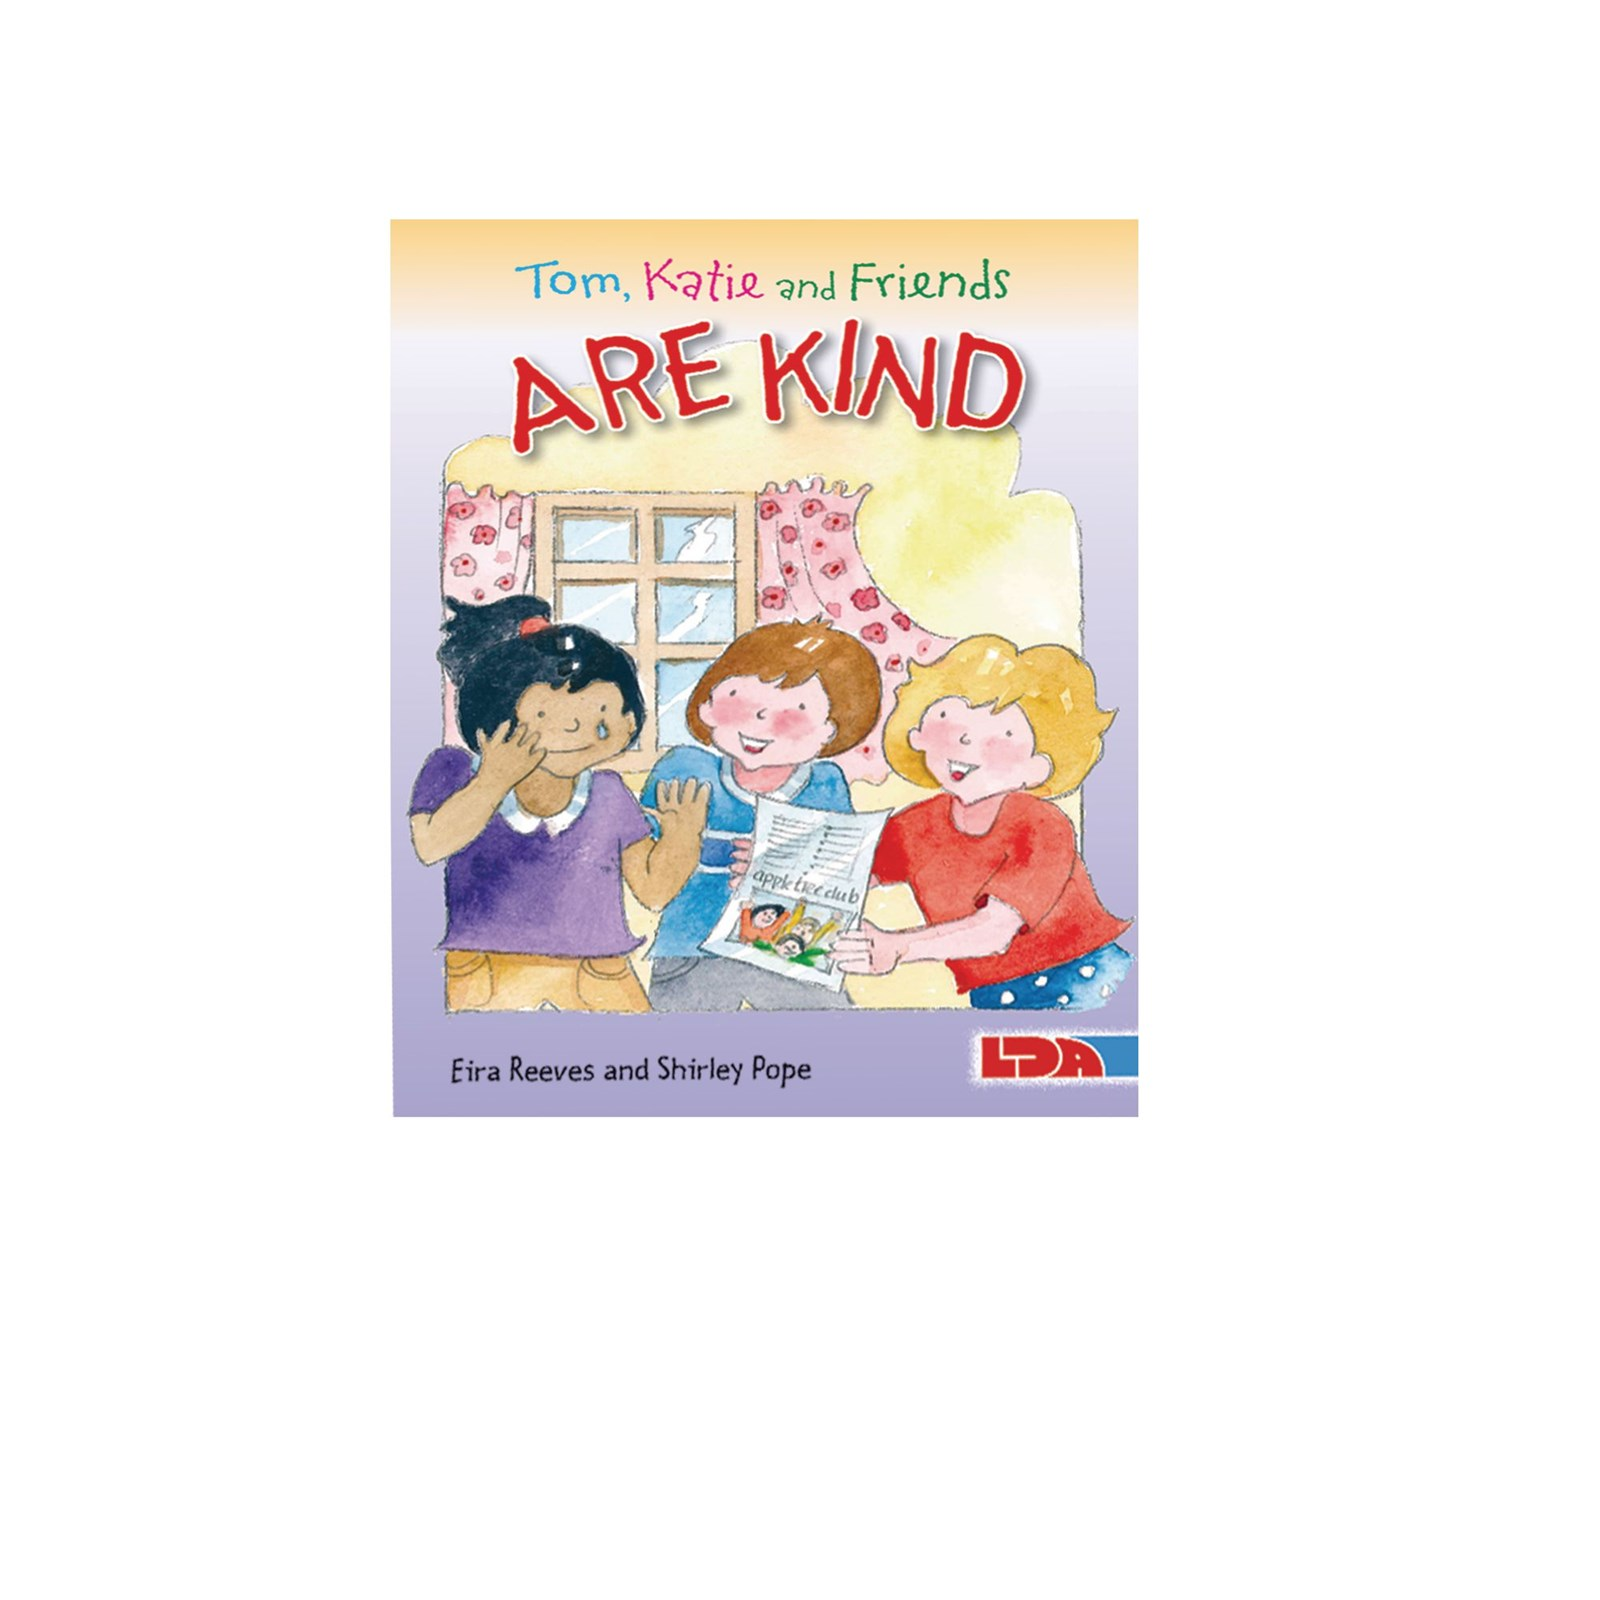 Tom, Katie and Friends are Kind Book